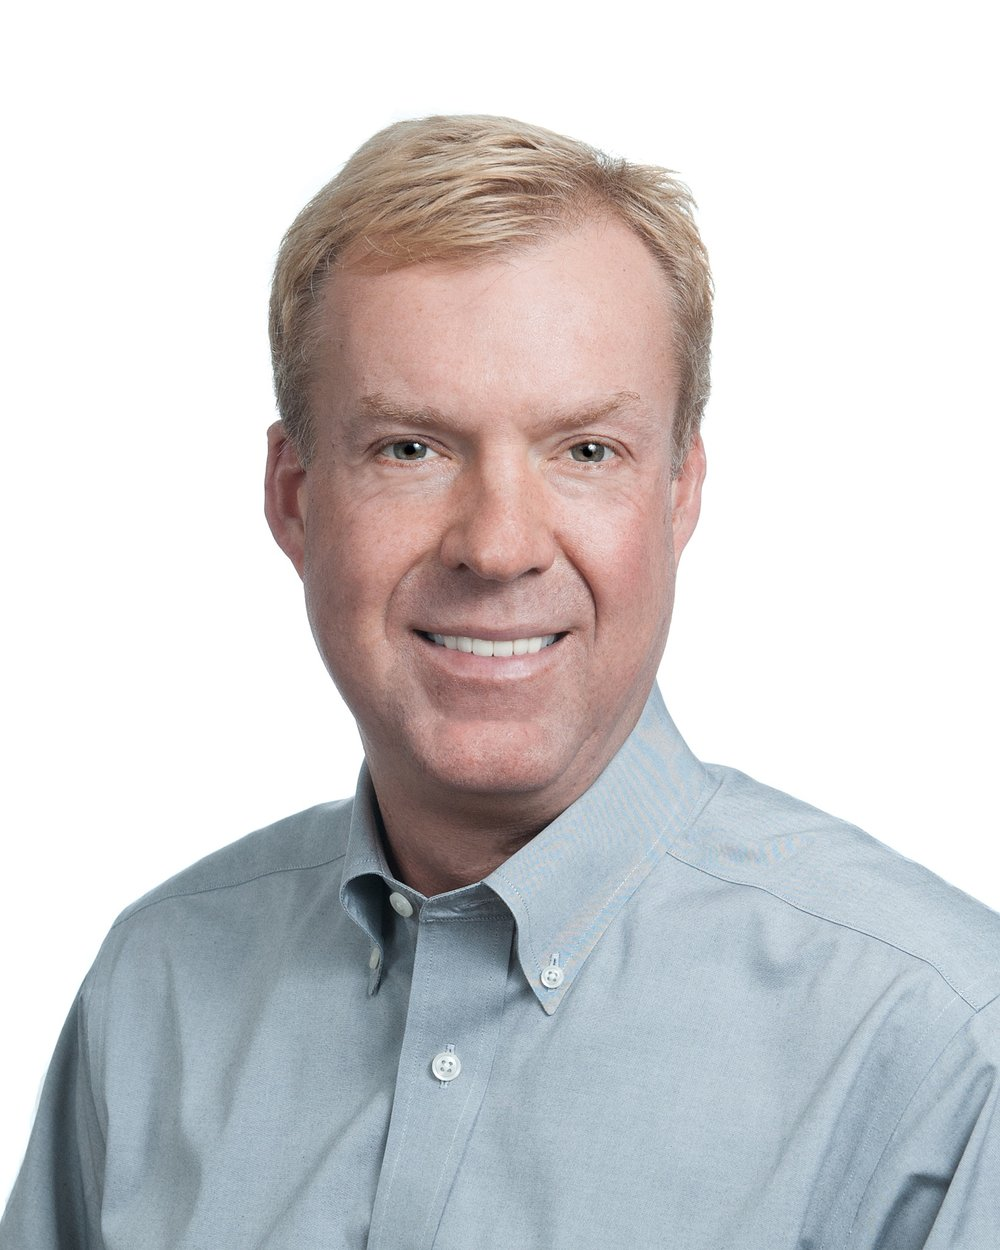 Steve Lupien - Executive DirectorSteve is an executive processing over 30 years of cross-functional leadership experience in industry-diverse public private and NFP organizations spanning high technology, consumer packaged goods and business services.